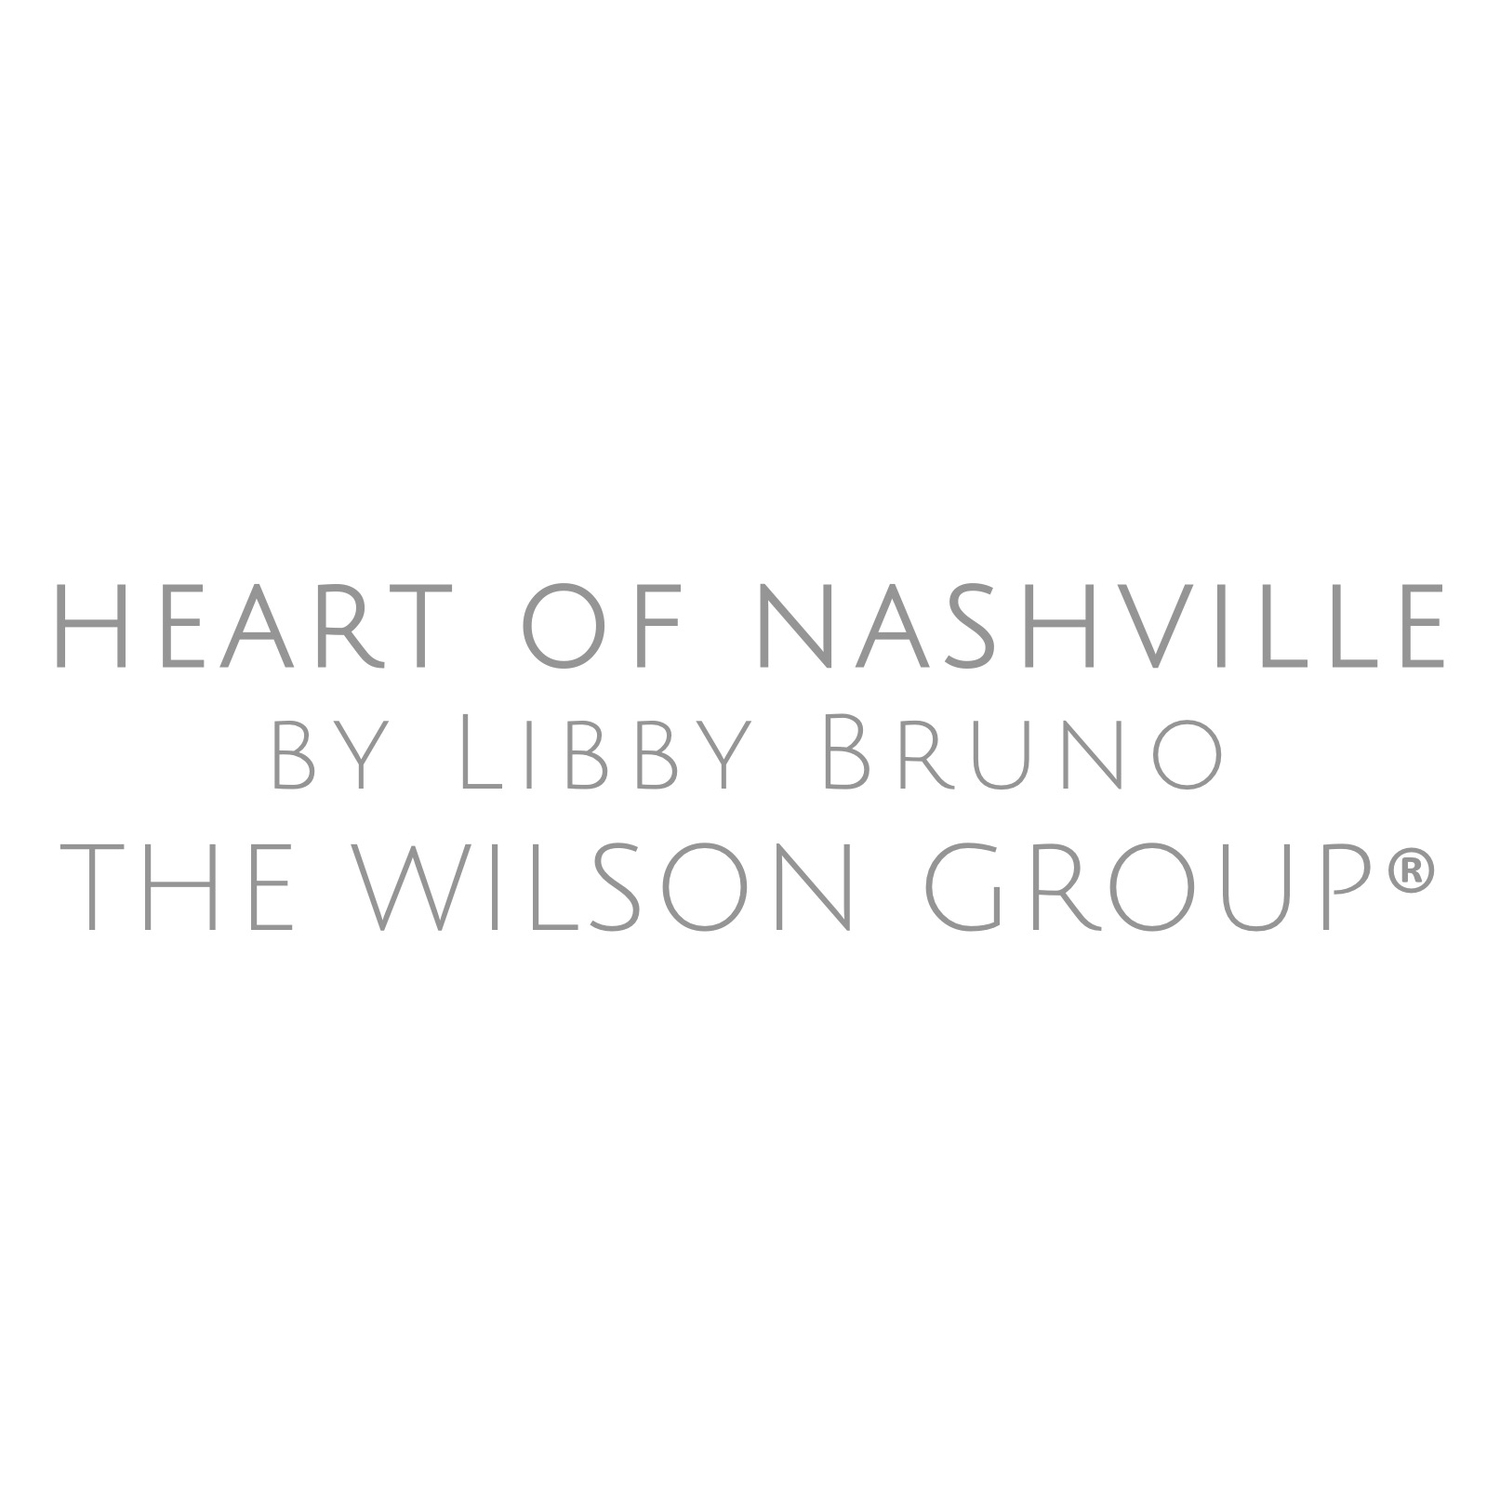 Libby Bruno - The Wilson Group Real Estate Services, LLC